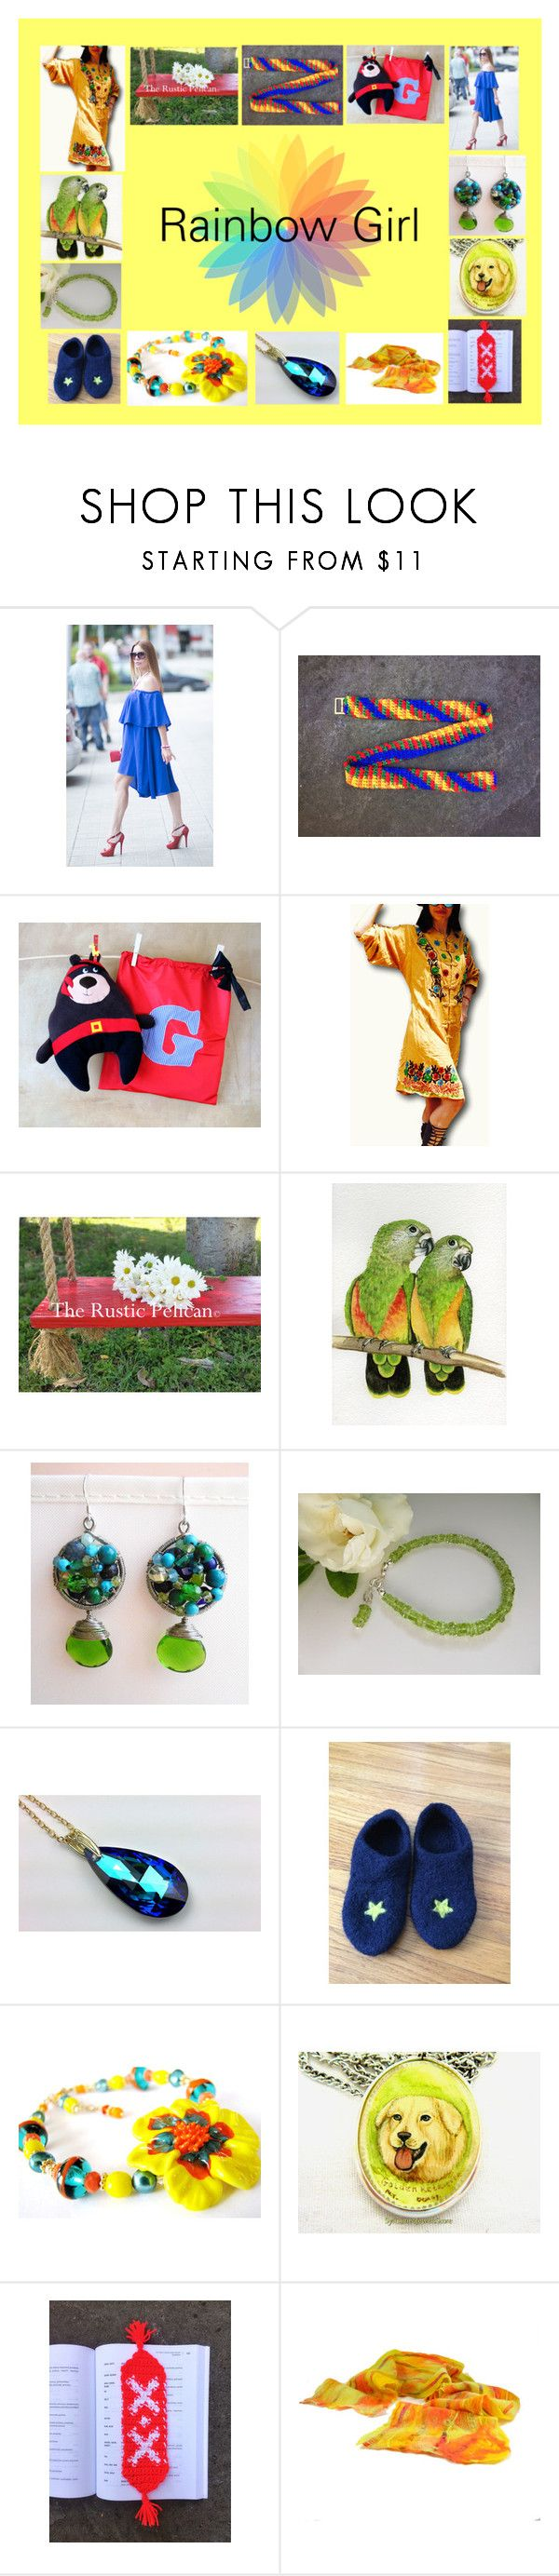 """""""Rainbow Girl: Handmade Gifts for Her"""" by paulinemcewen ❤ liked on Polyvore featuring rustic"""